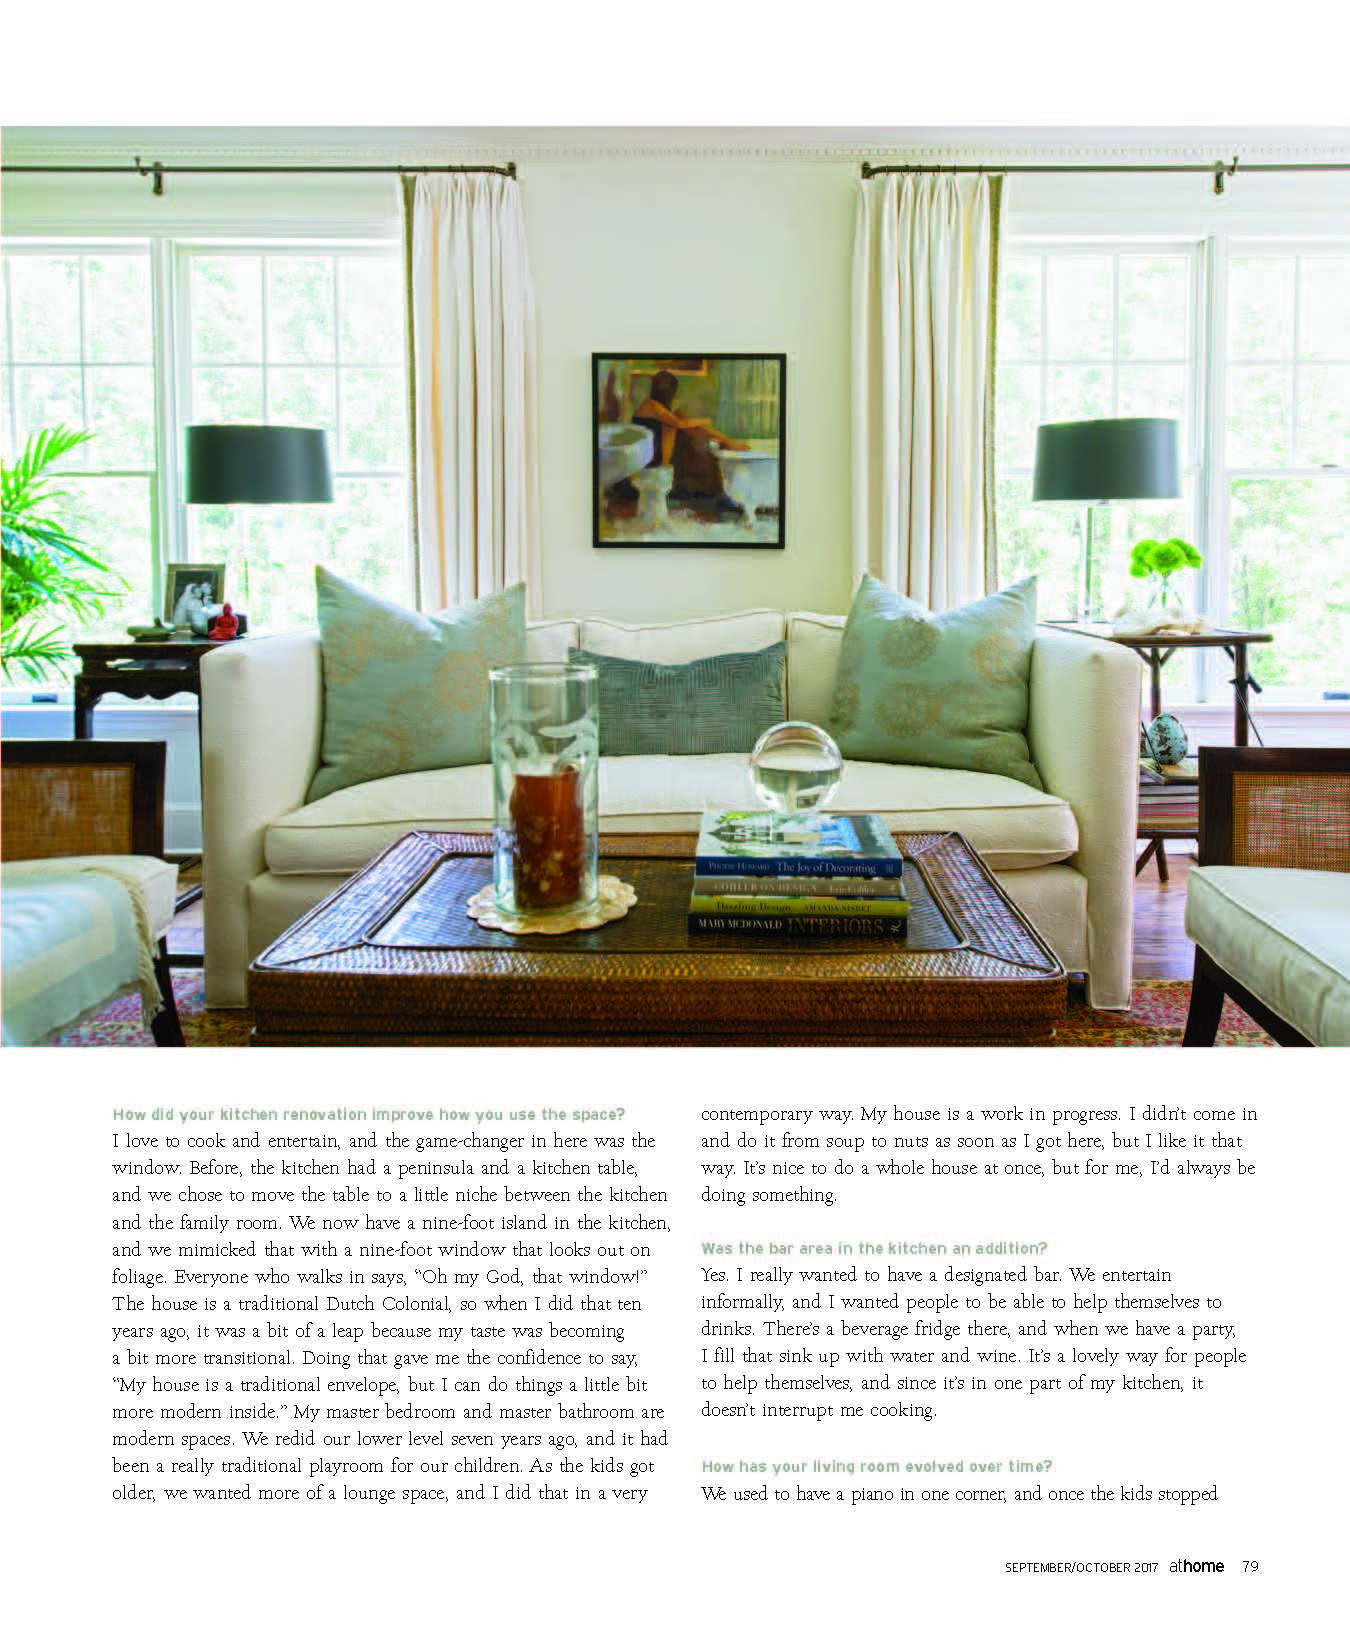 At Home_Page_08.jpg